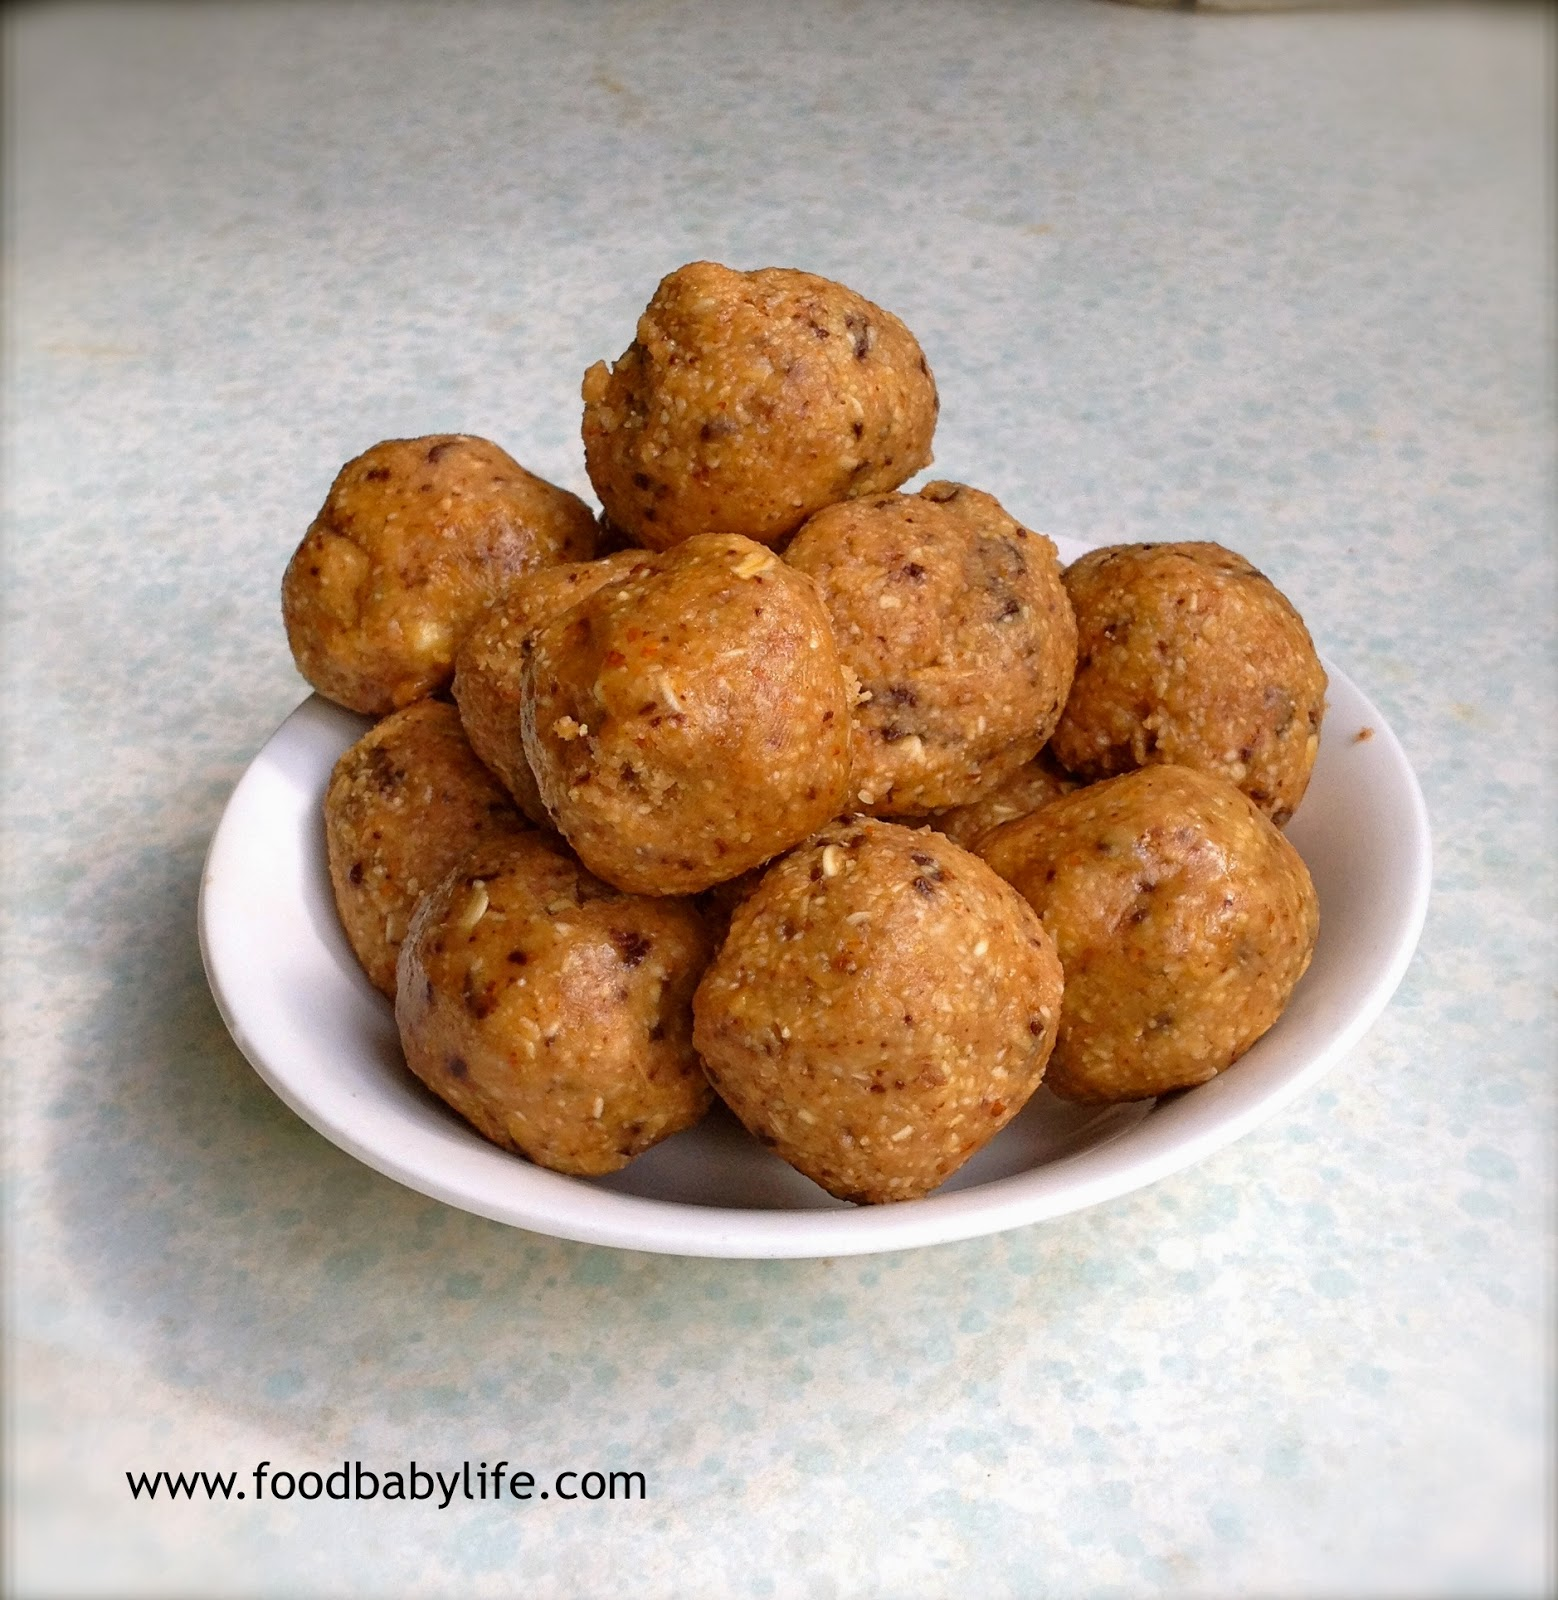 Peanut Butter Chocolate Chip Cookie Dough Balls © www.foodbabylife.com